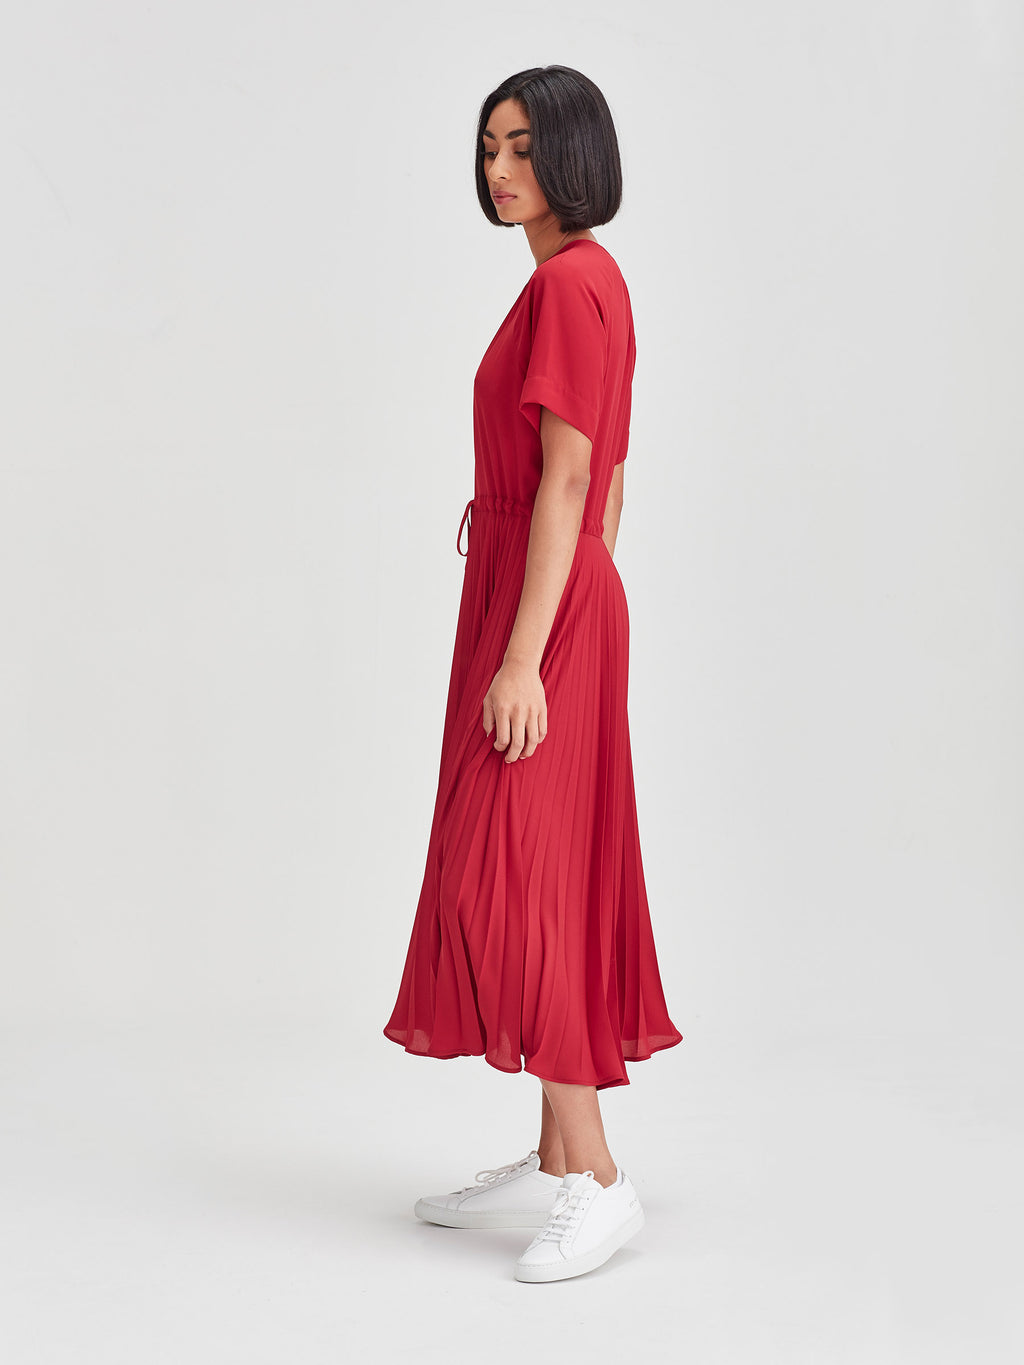 Gracie Pleat Dress (Matte Pleat) Carmine